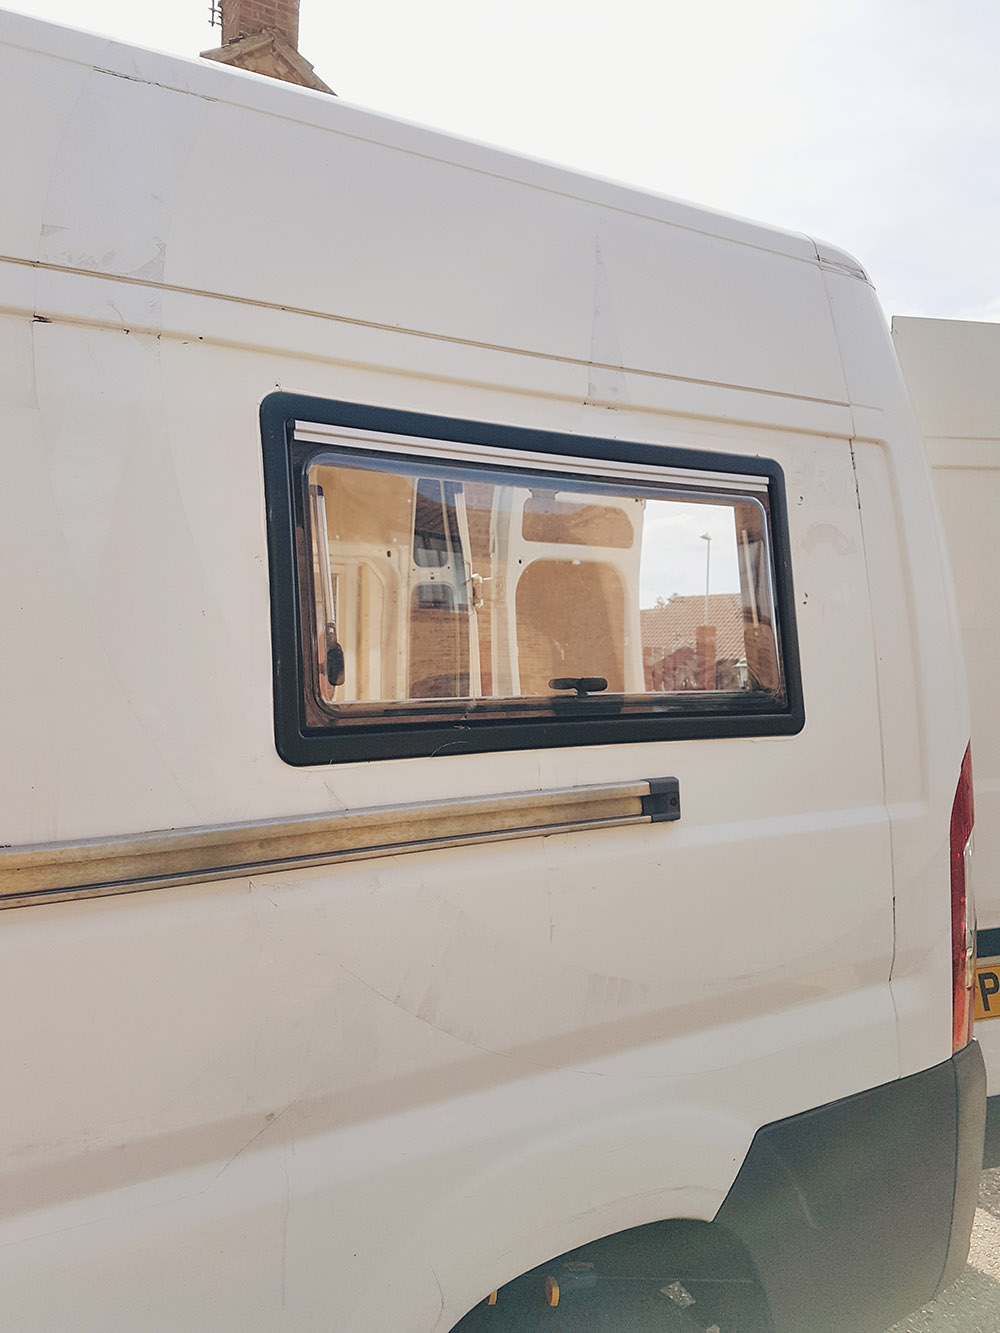 Of All The Windows That We Fitted In Van Fitting Seitz Was Definitely Easiest I Mean They Were Pretty Easy To Fit Yourself